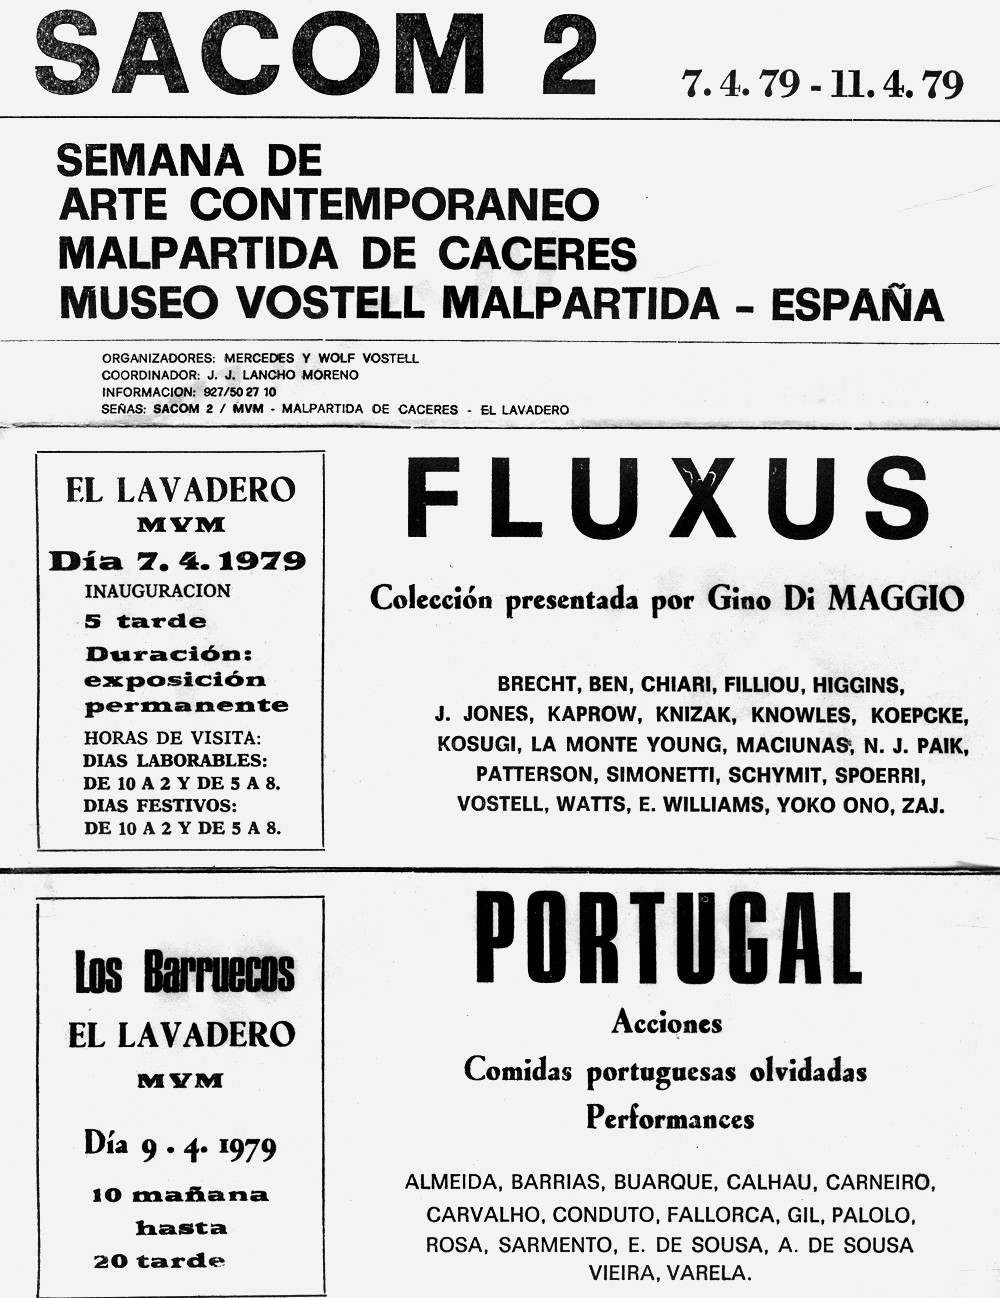 Program for SACOM 2, announcing actions and performances by the Portuguese artists, 1979.